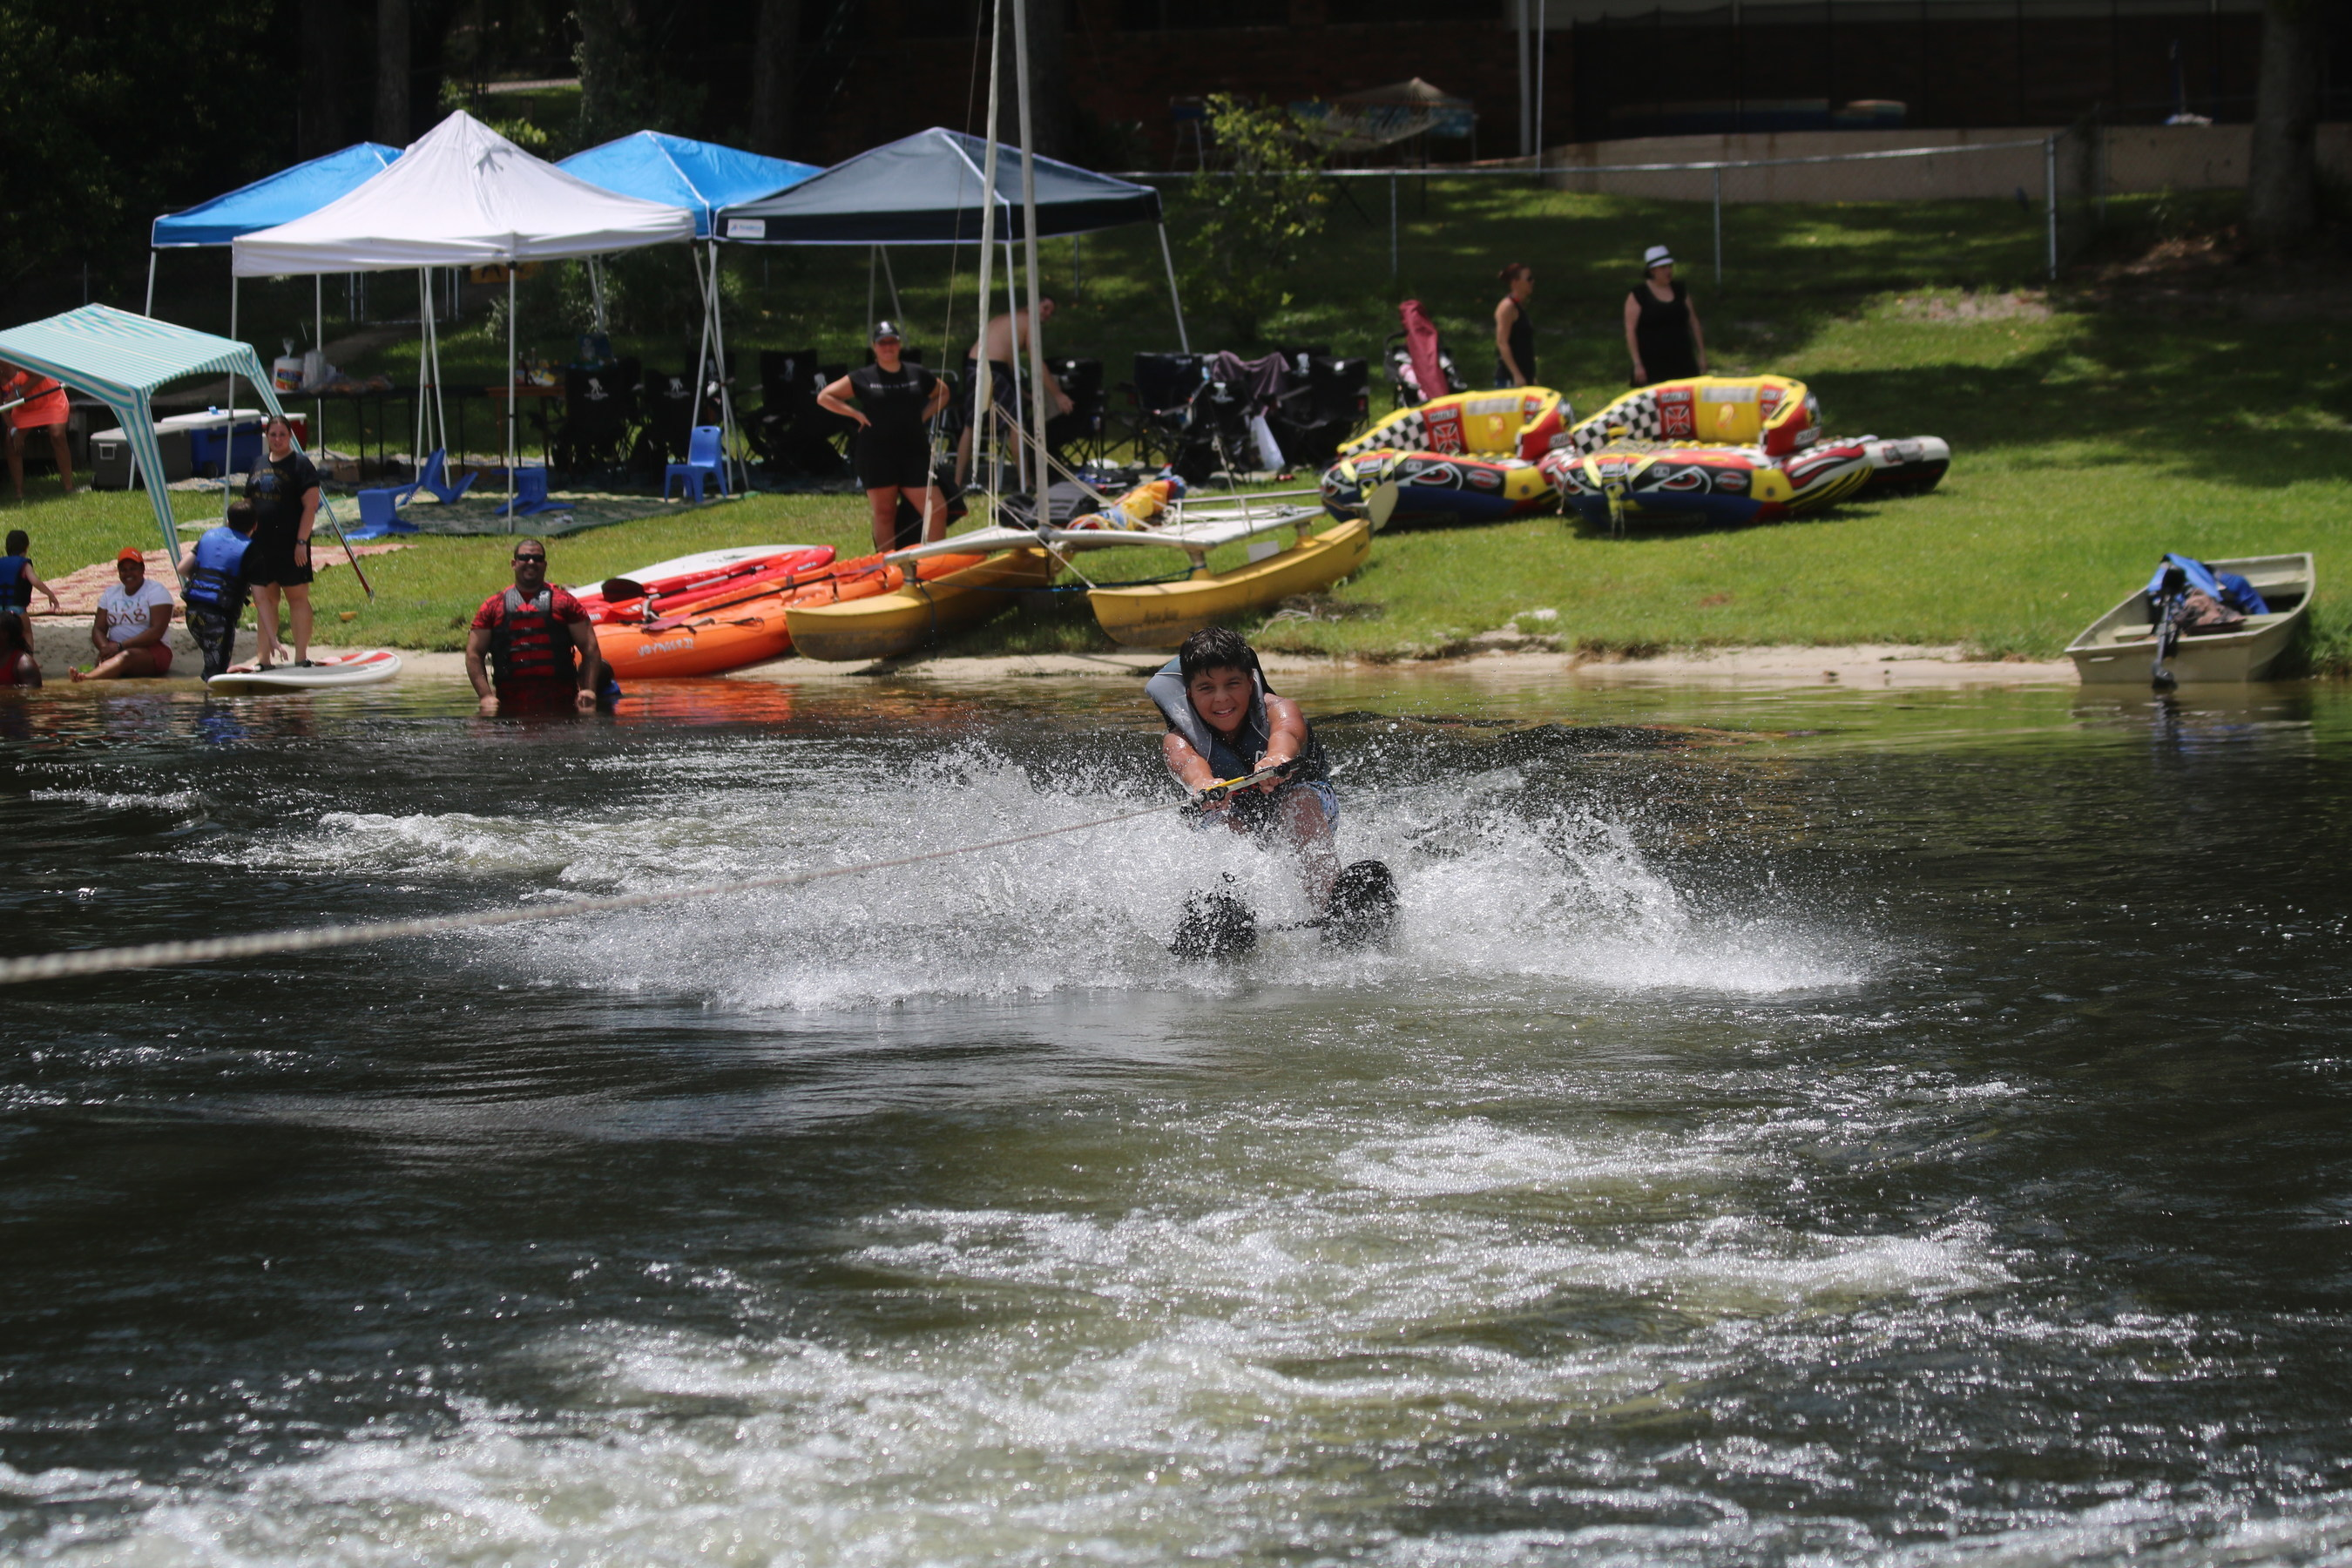 At a recent Wounded Warrior Project event, veterans and family members enjoyed a day of fun at a Melrose, Fla. lake house, including water skiing and kayaking.